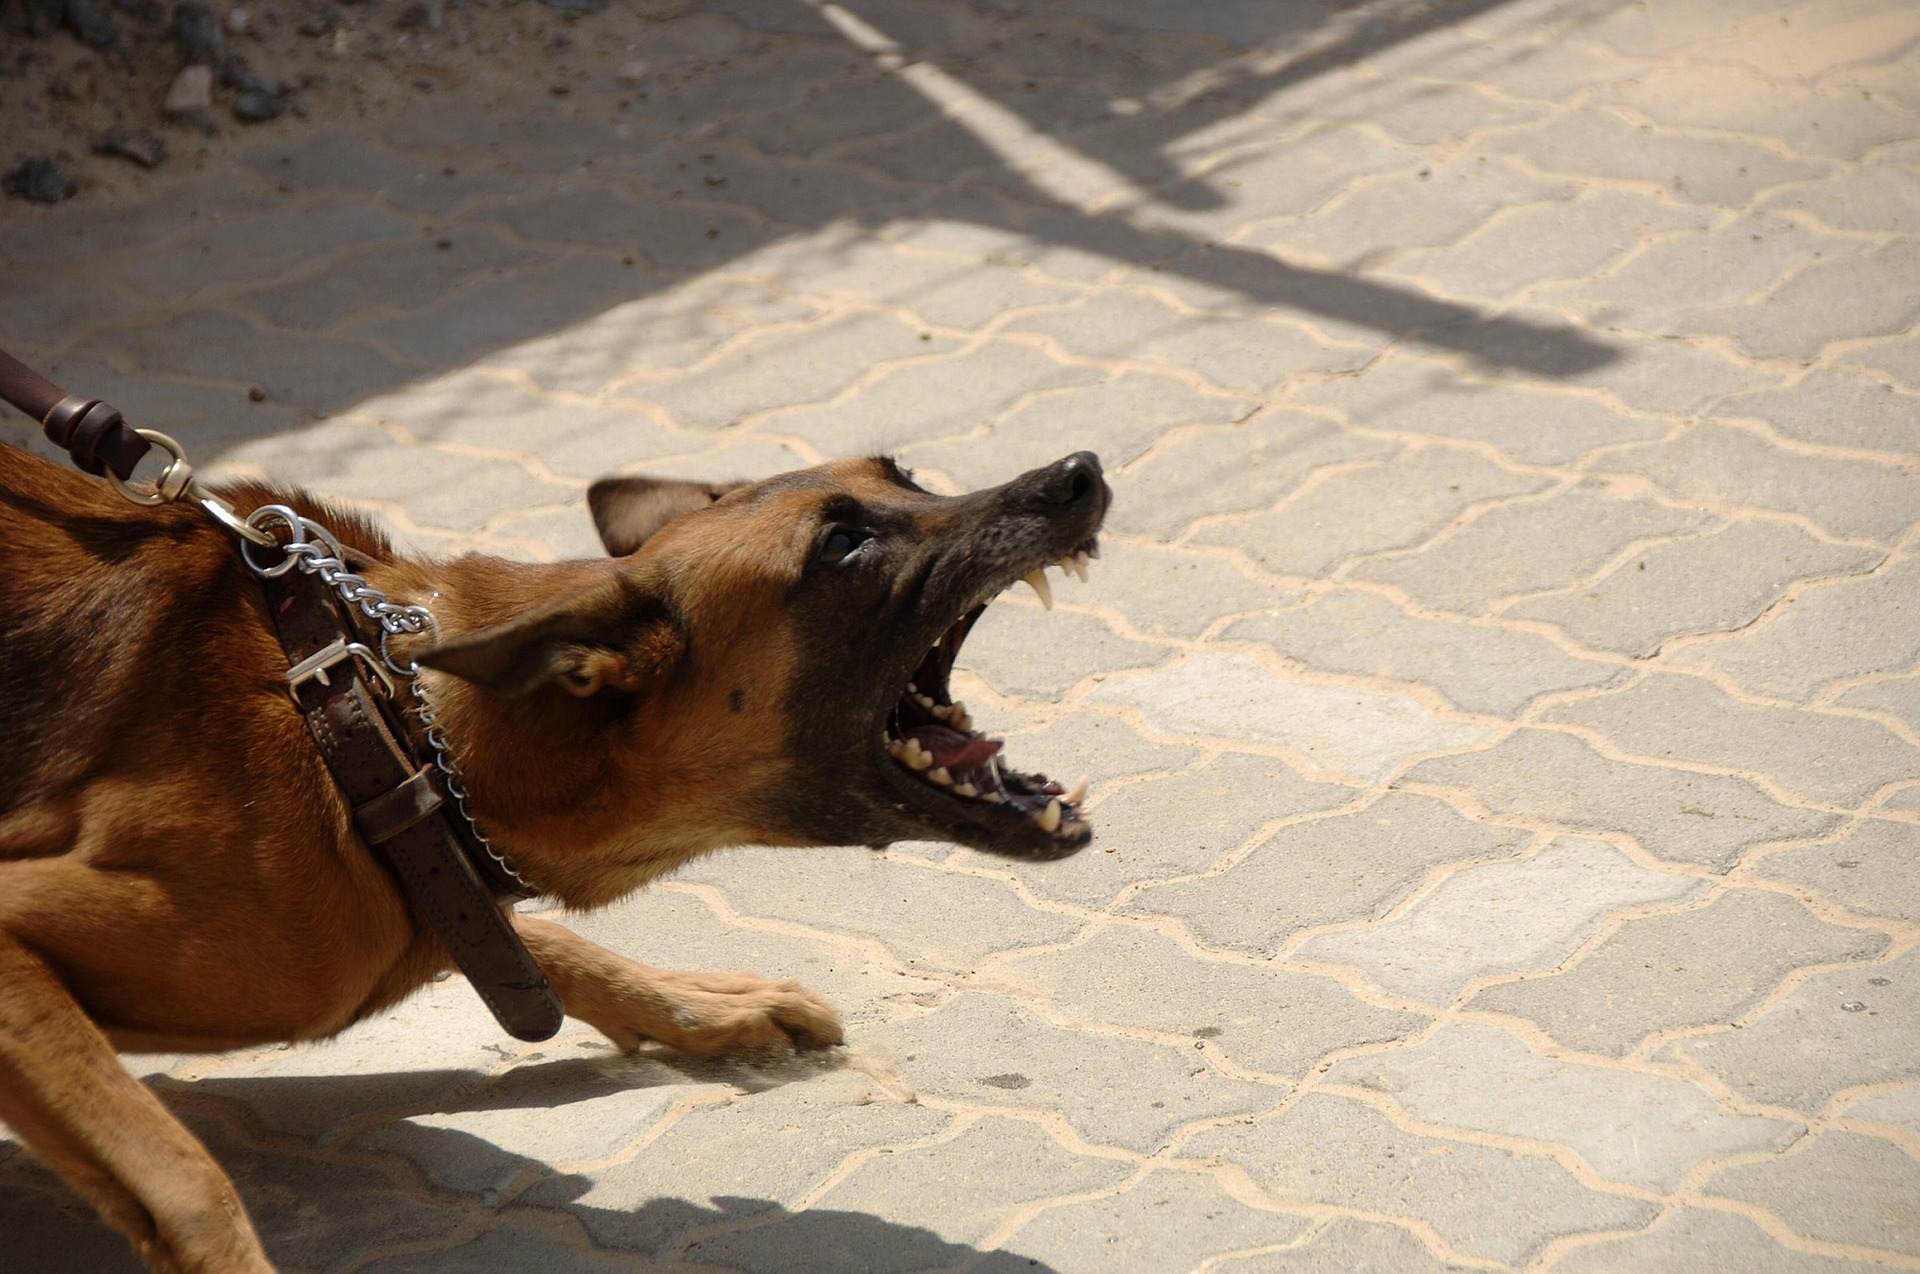 16 dog attacks in eight weeks prompts Council warning